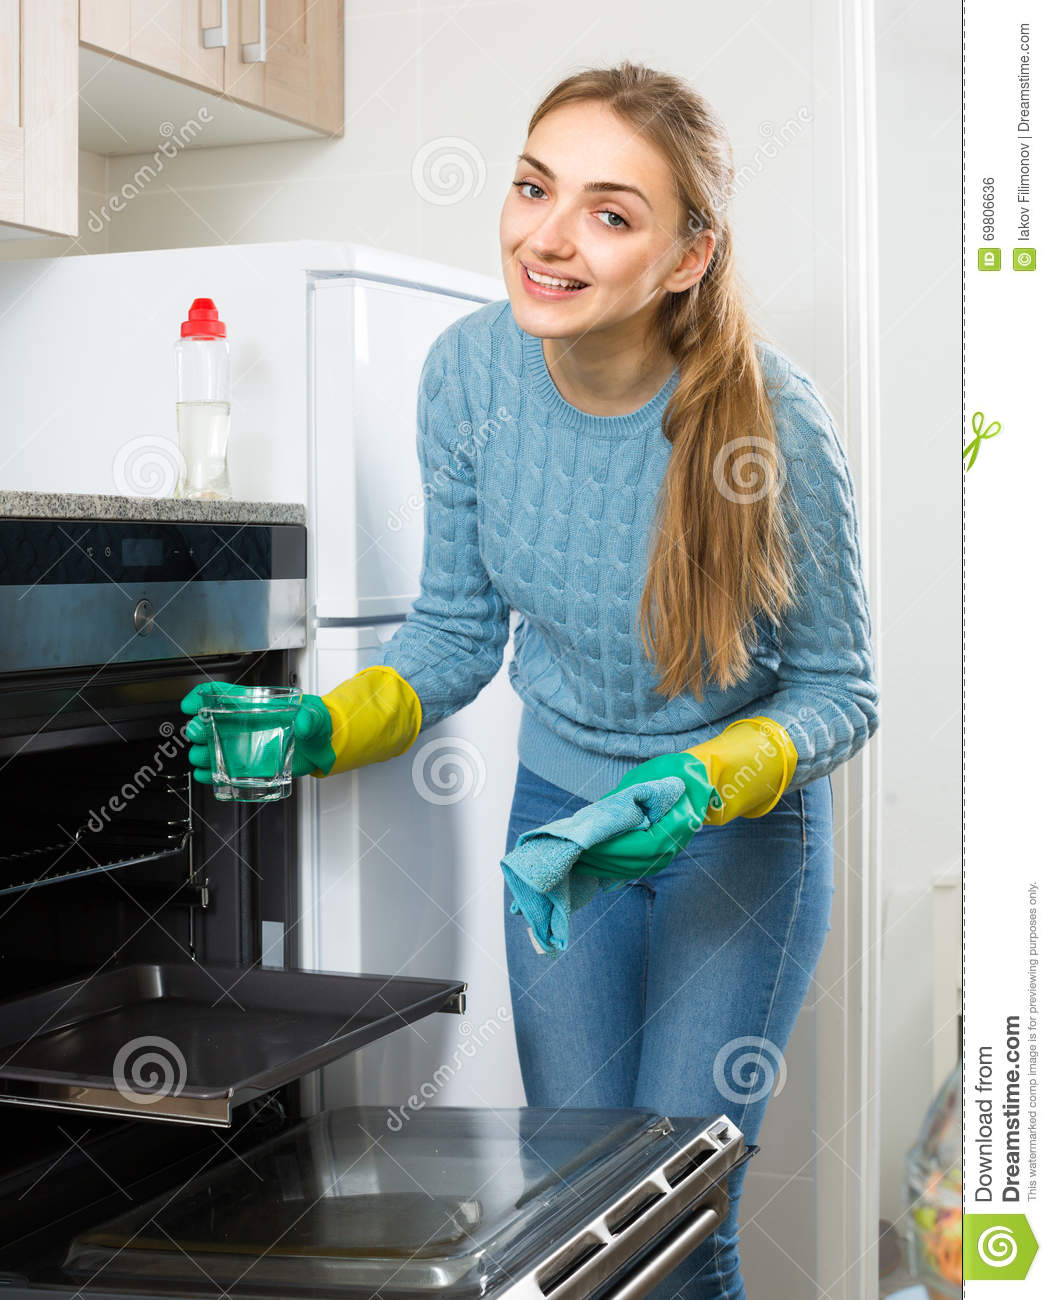 Young Maid Doing Oven Clean-up Stock Photo - Image of kitchen, maid ...